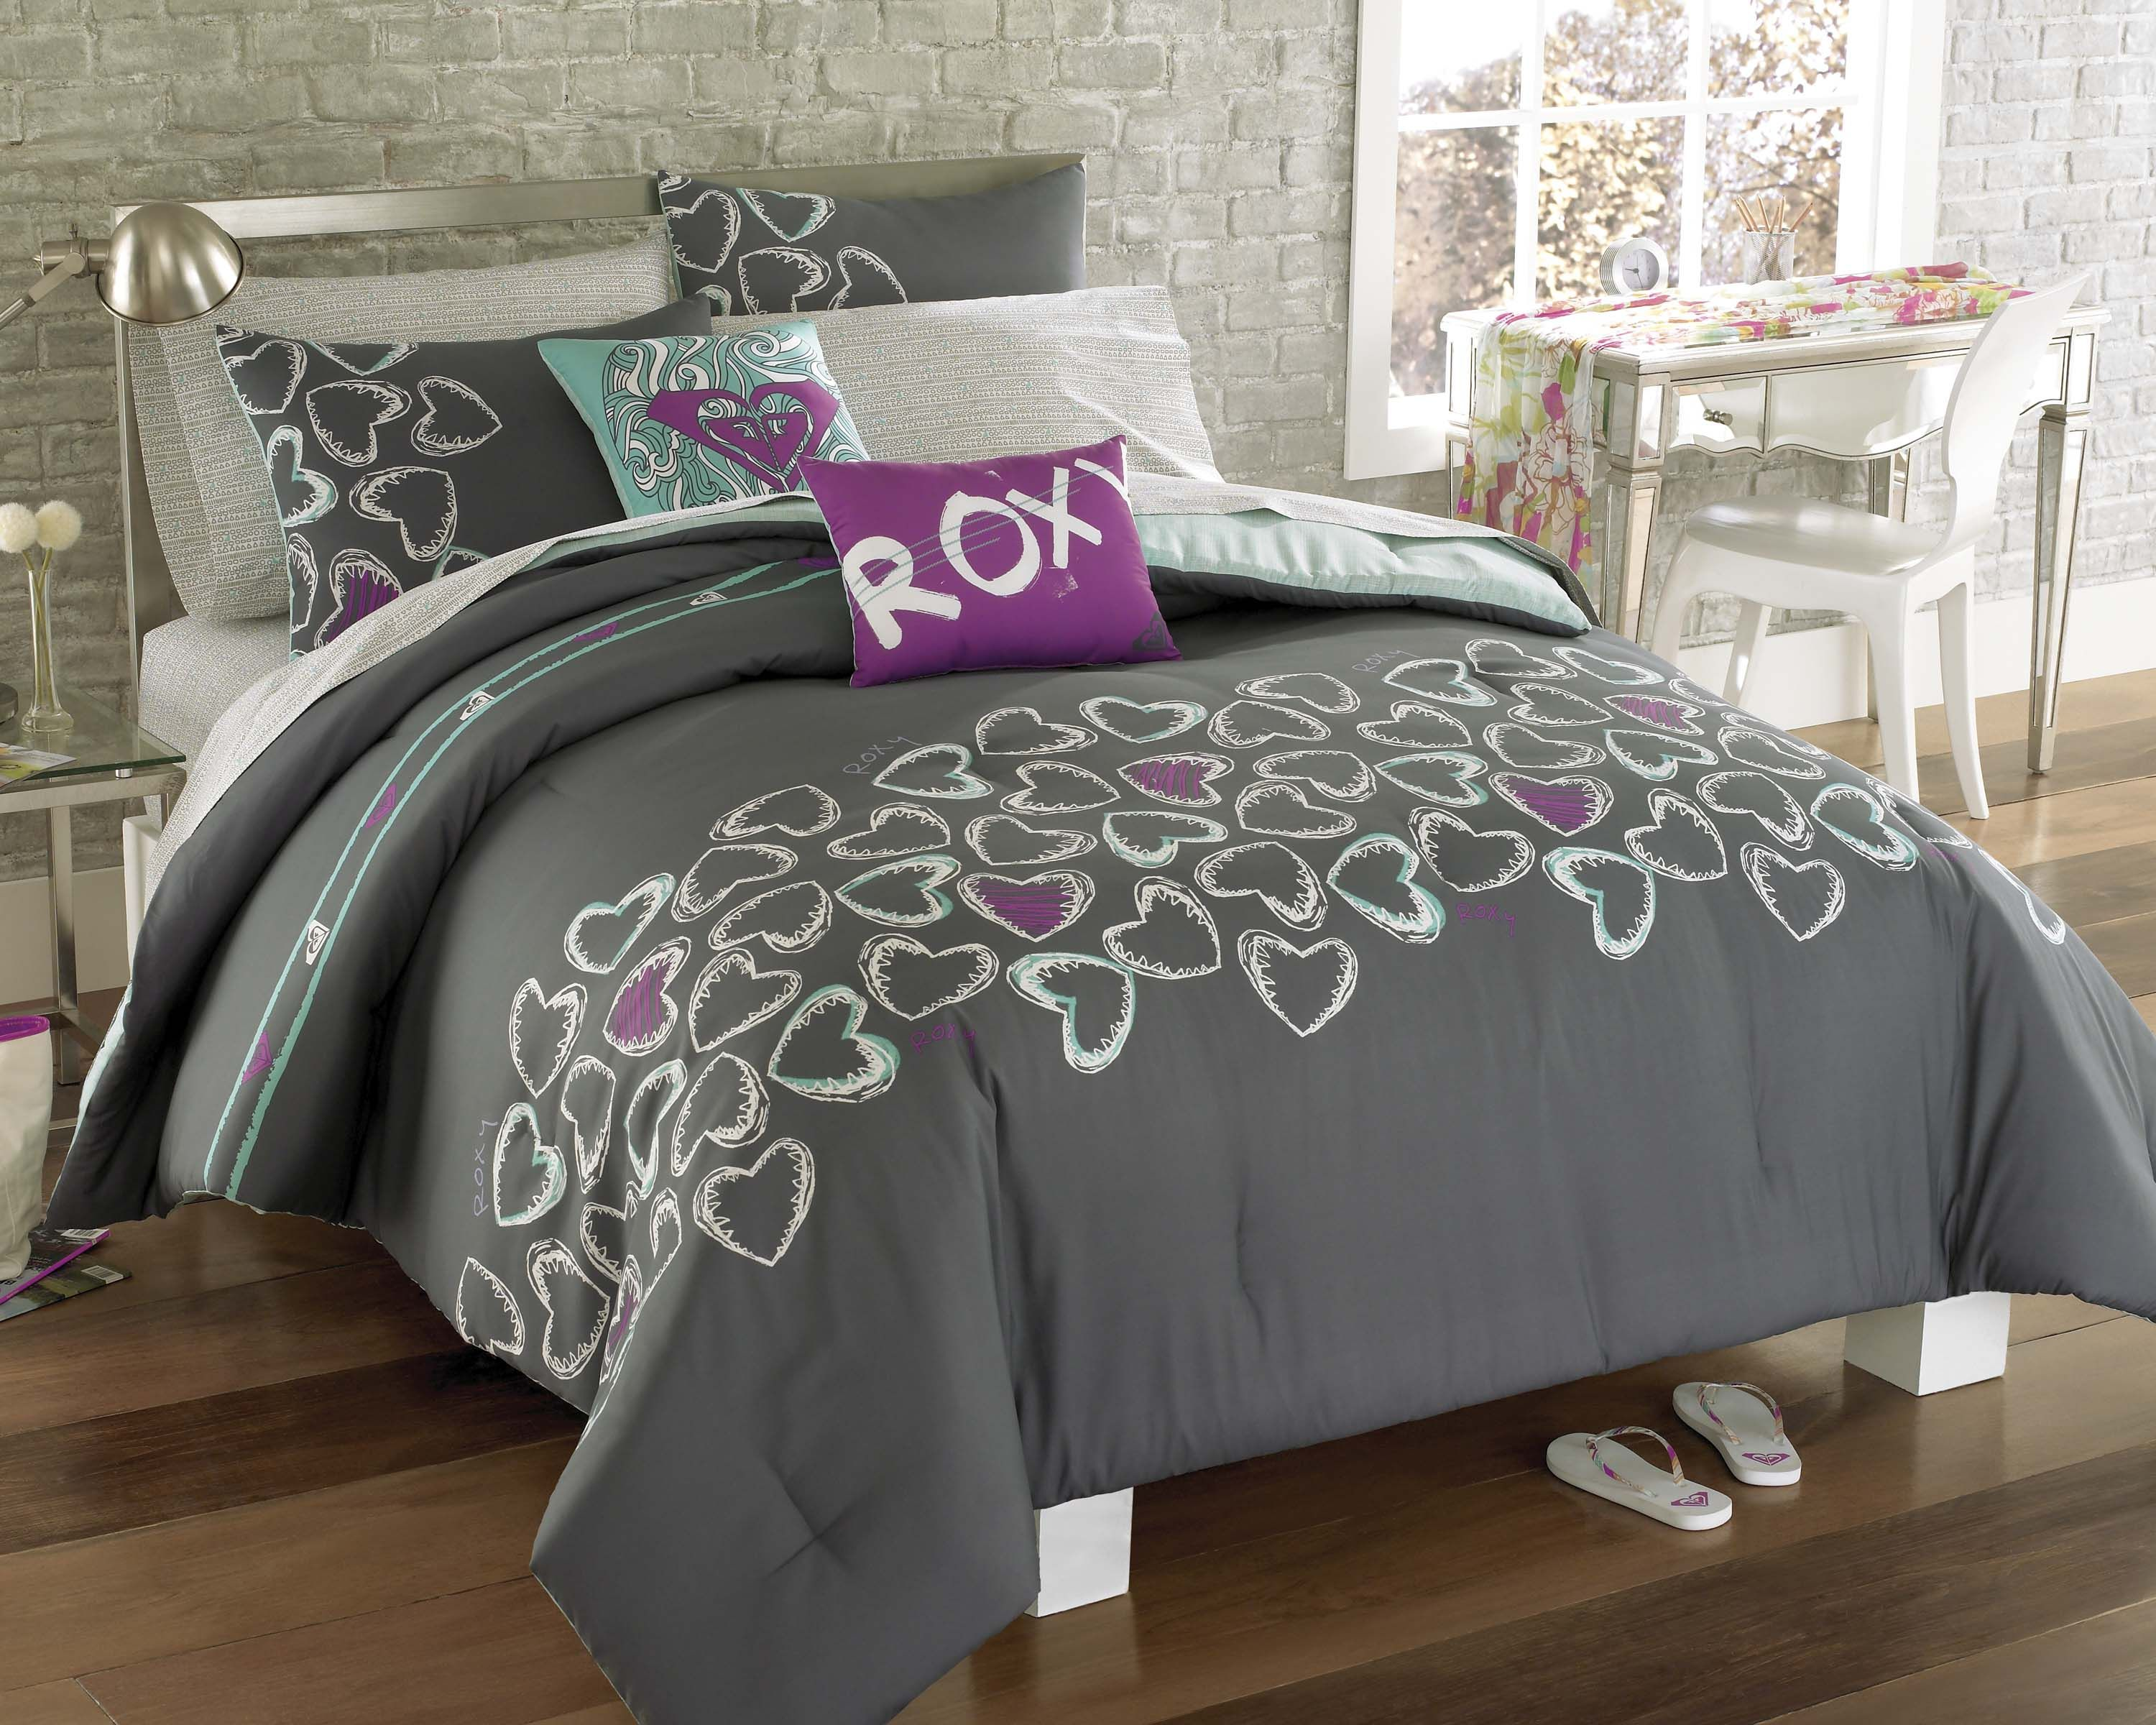 Billabong bedding sets - Full Bedding Sets For Women Roxy Heart And Soul Full Bed In A Bag And